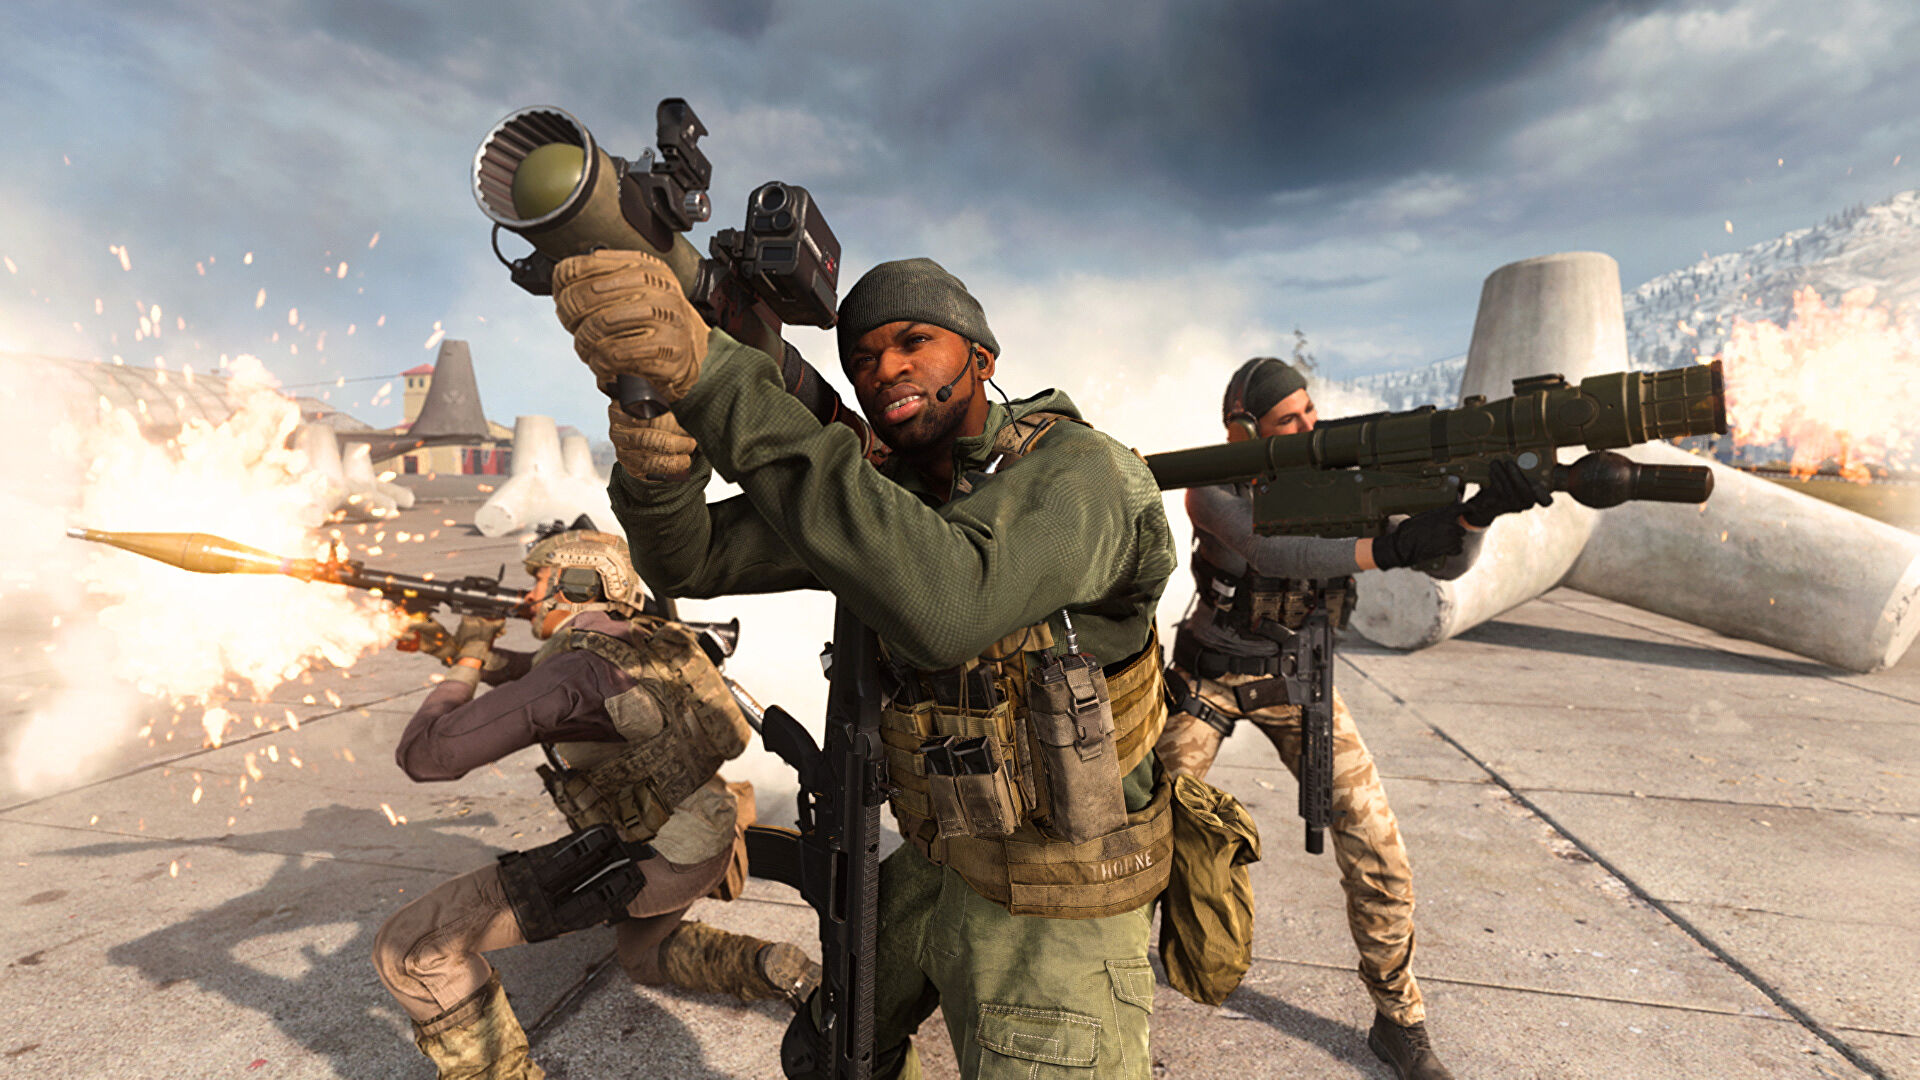 Call Of Duty: Warzone bans another 60,000 cheaters - Download Call Of Duty: Warzone bans another 60,000 cheaters for FREE - Free Cheats for Games